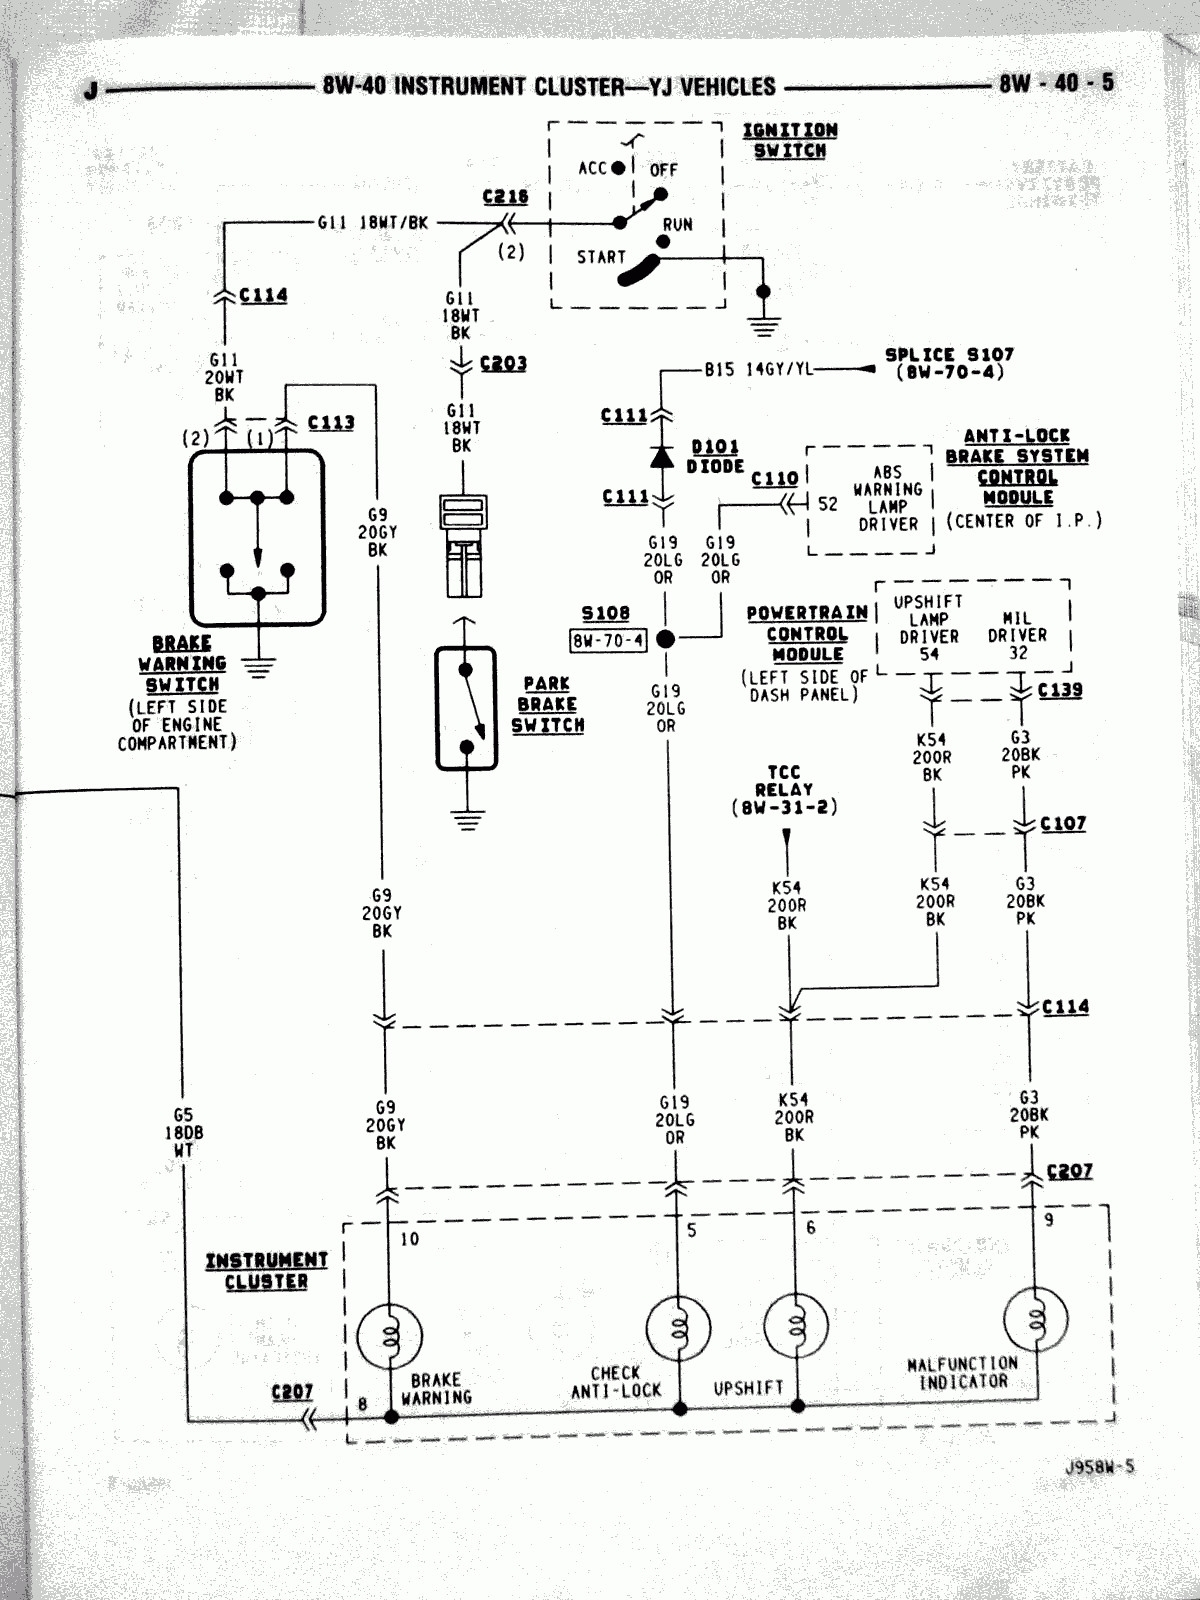 1998 Jeep Wrangler Yj Wiring Diagram